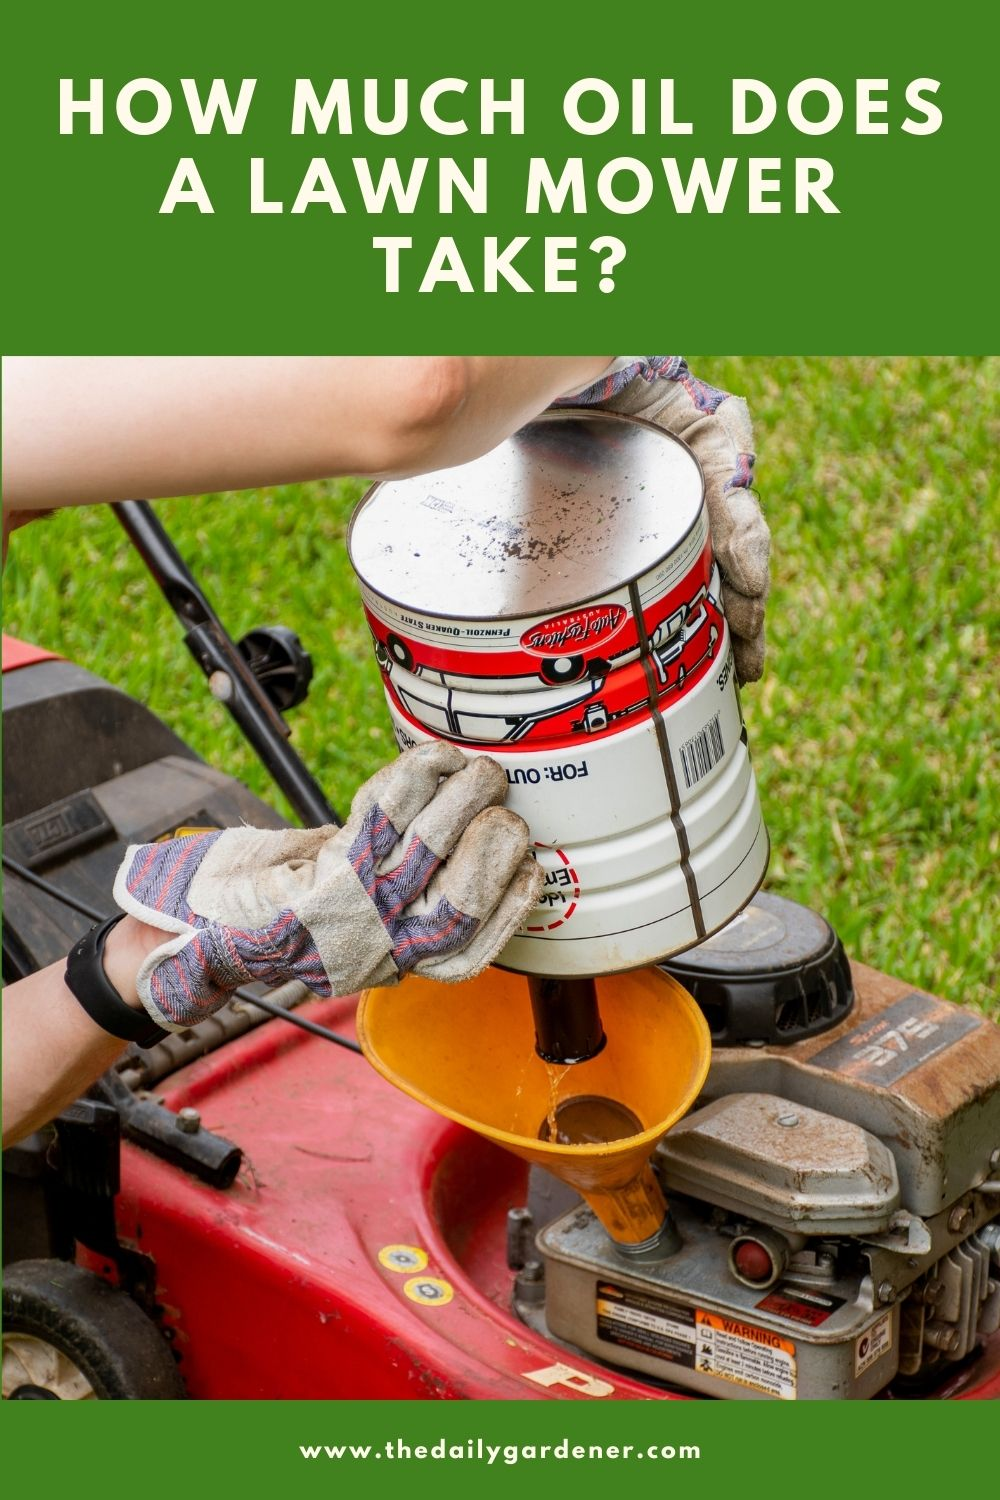 How Much Oil Does a Lawn Mower Take 2